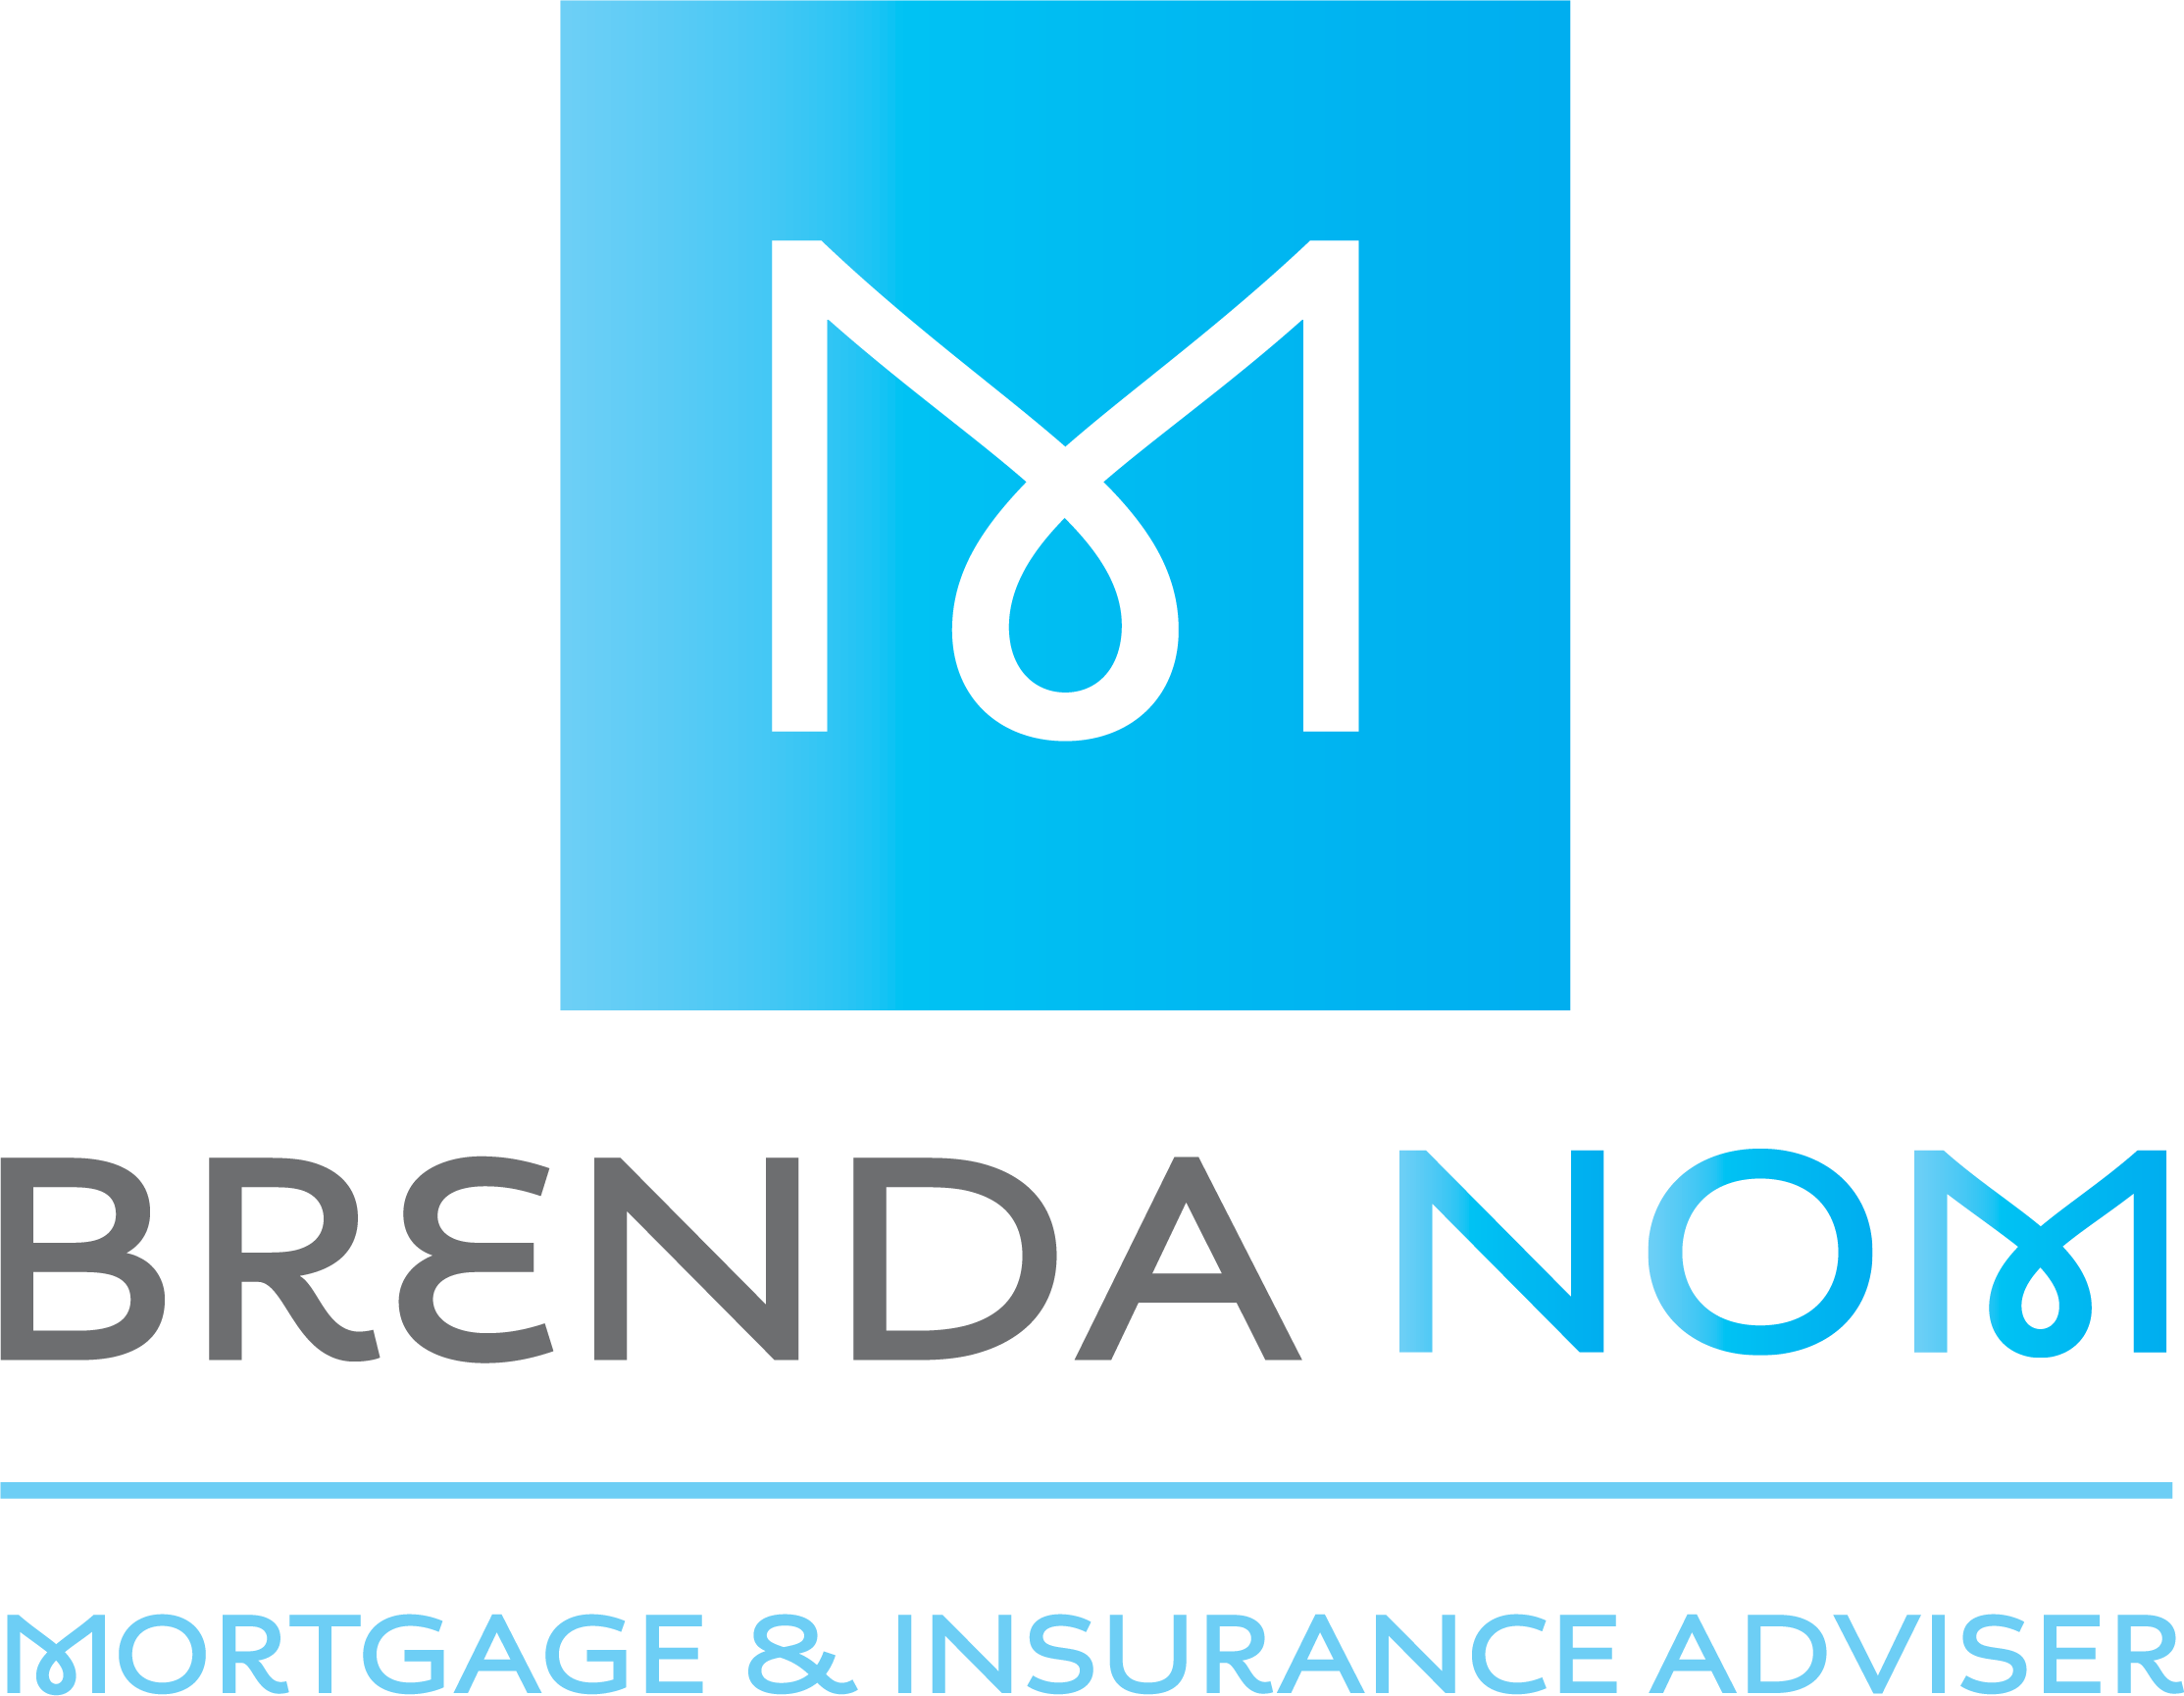 Brenda Nom Mortgages and Insurance